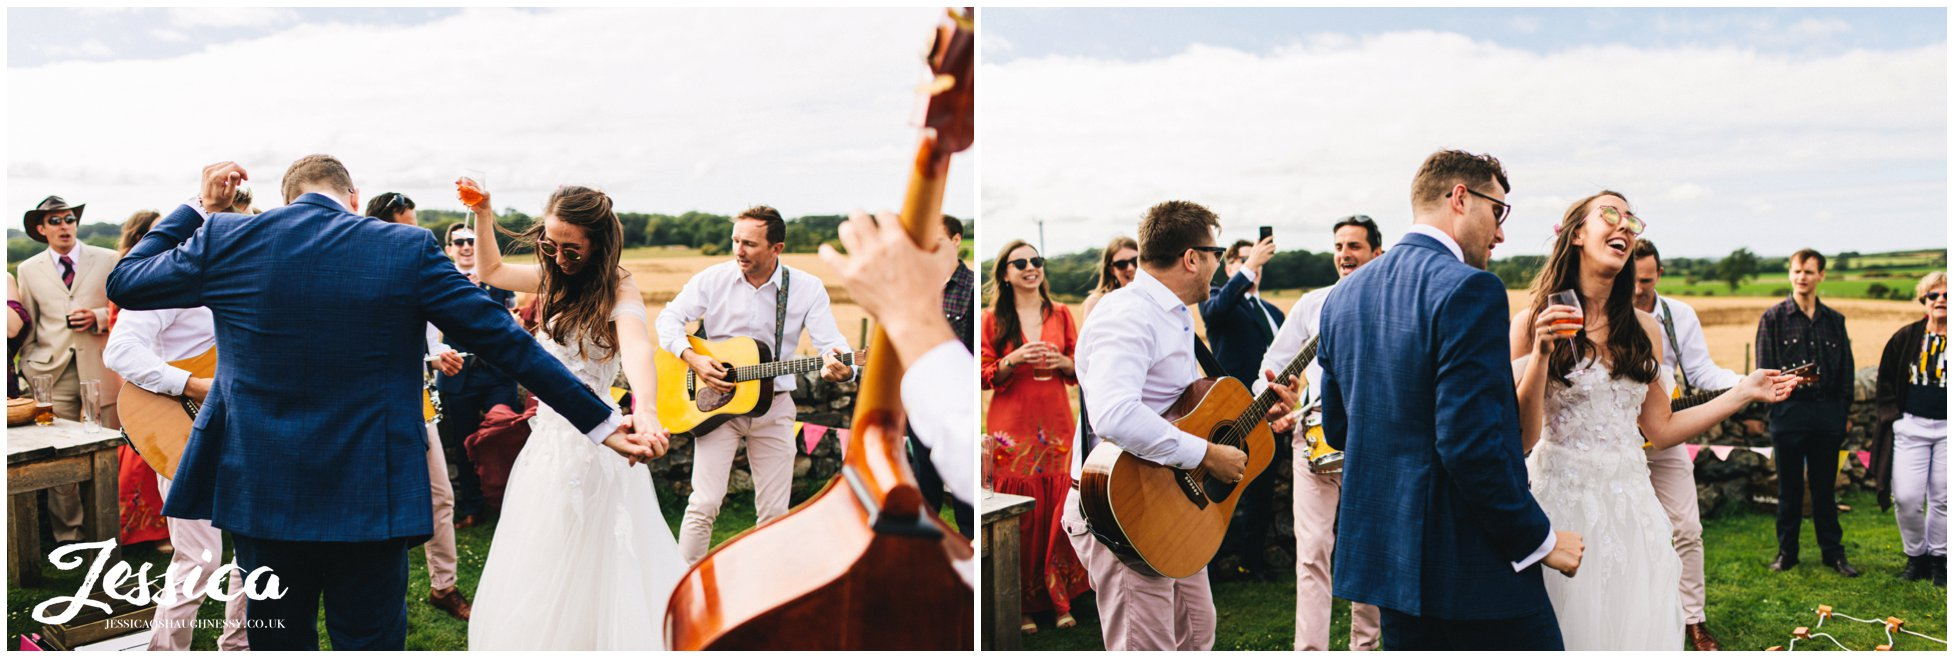 bride & groom dance to the band at the north wales wedding